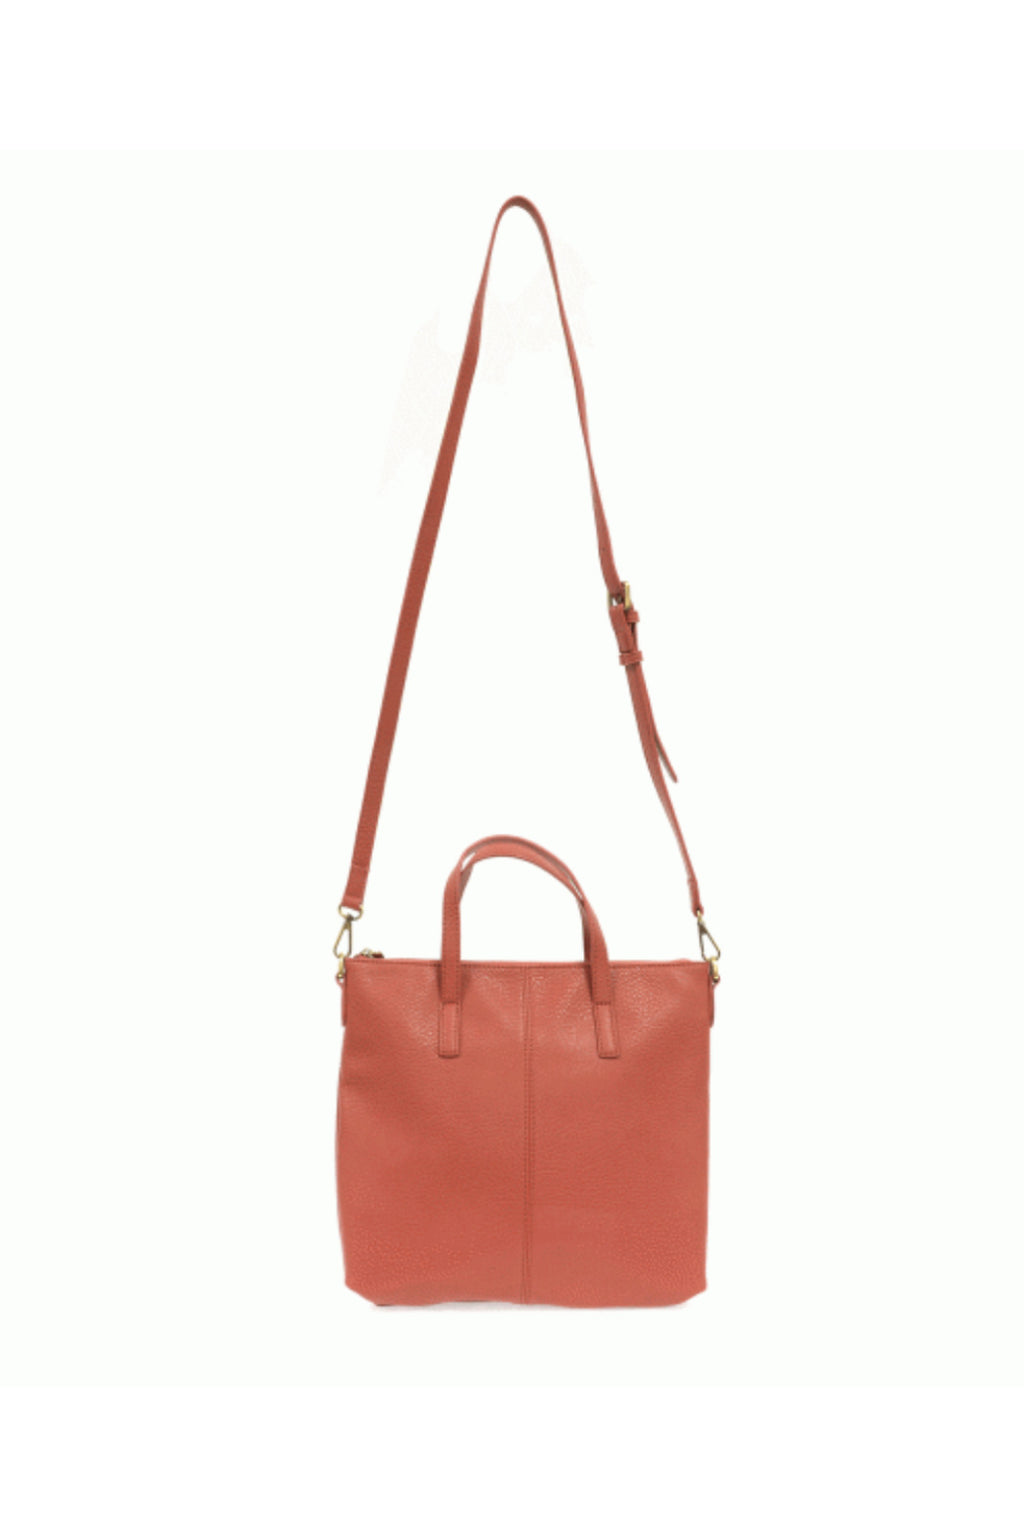 Joy Susan Kim Top Zip Tote - Coral